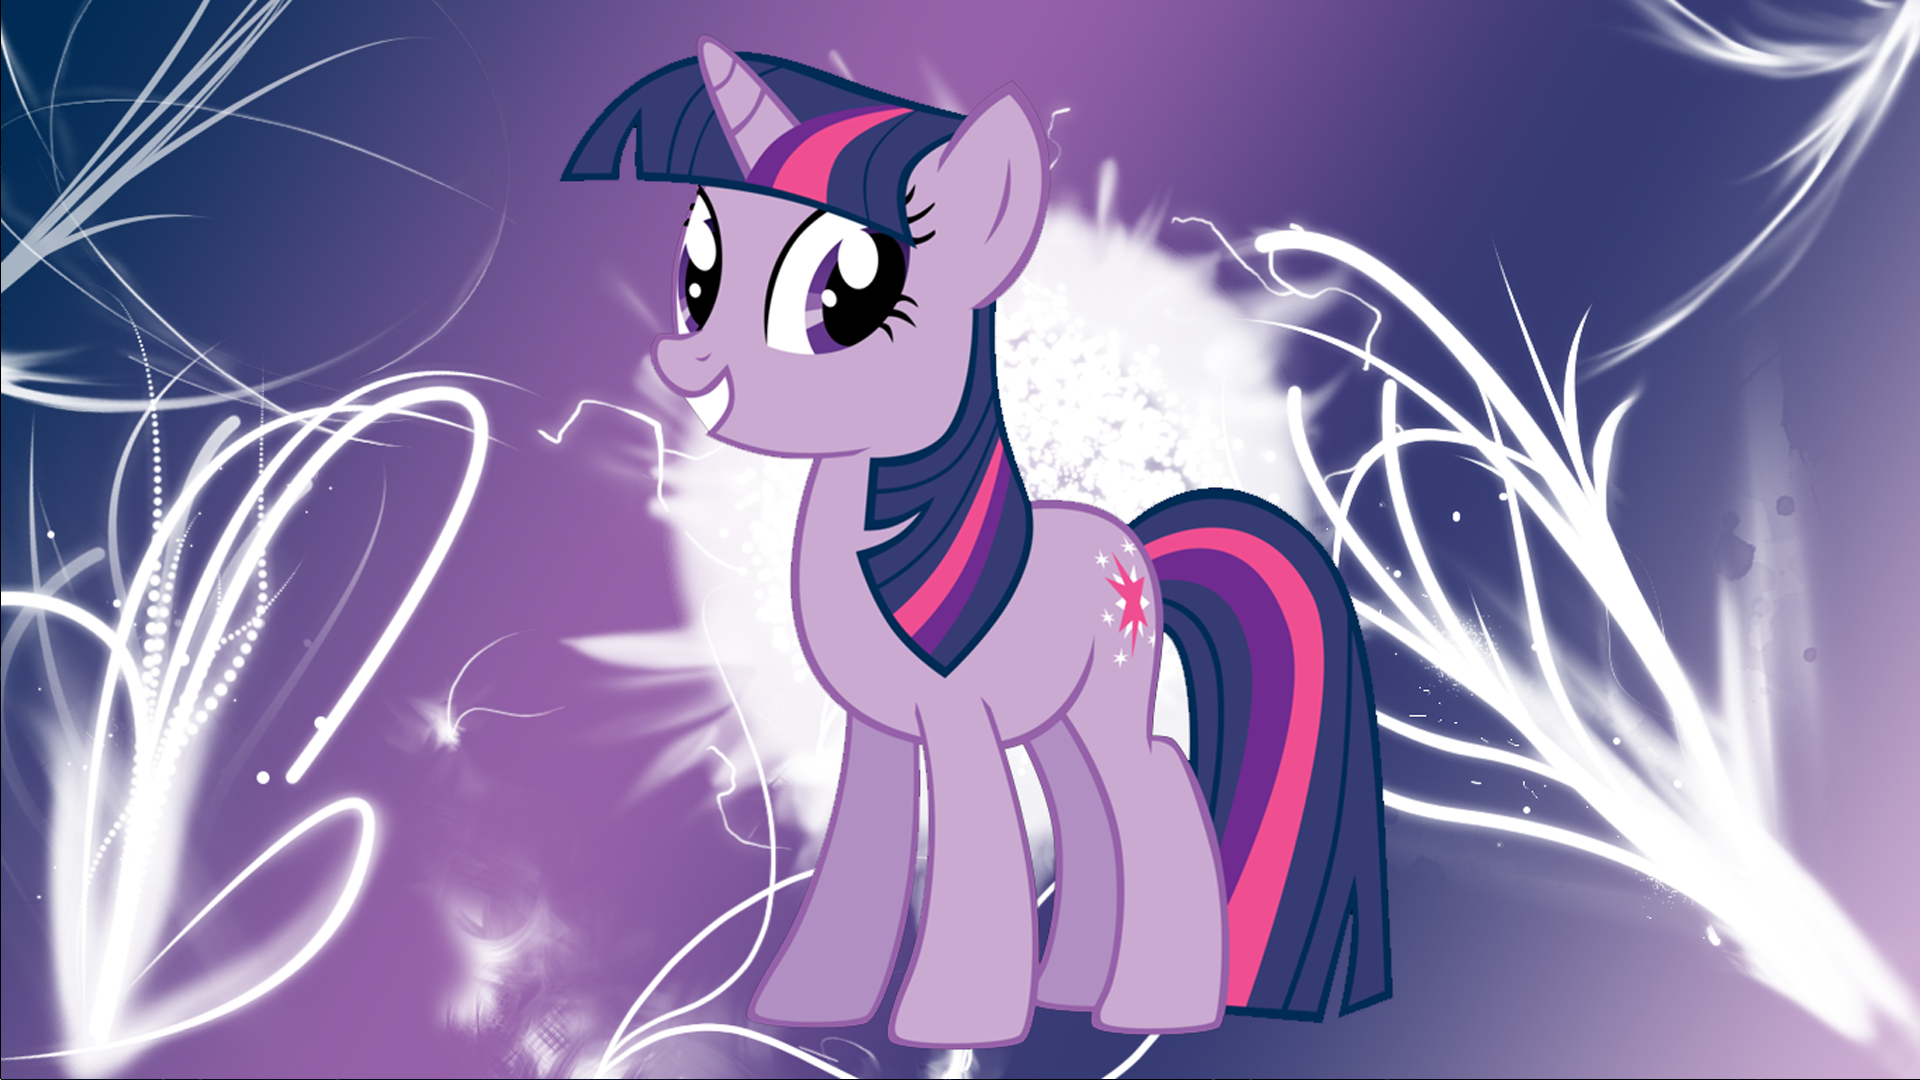 twilight sparkle wallpaper - photo #39